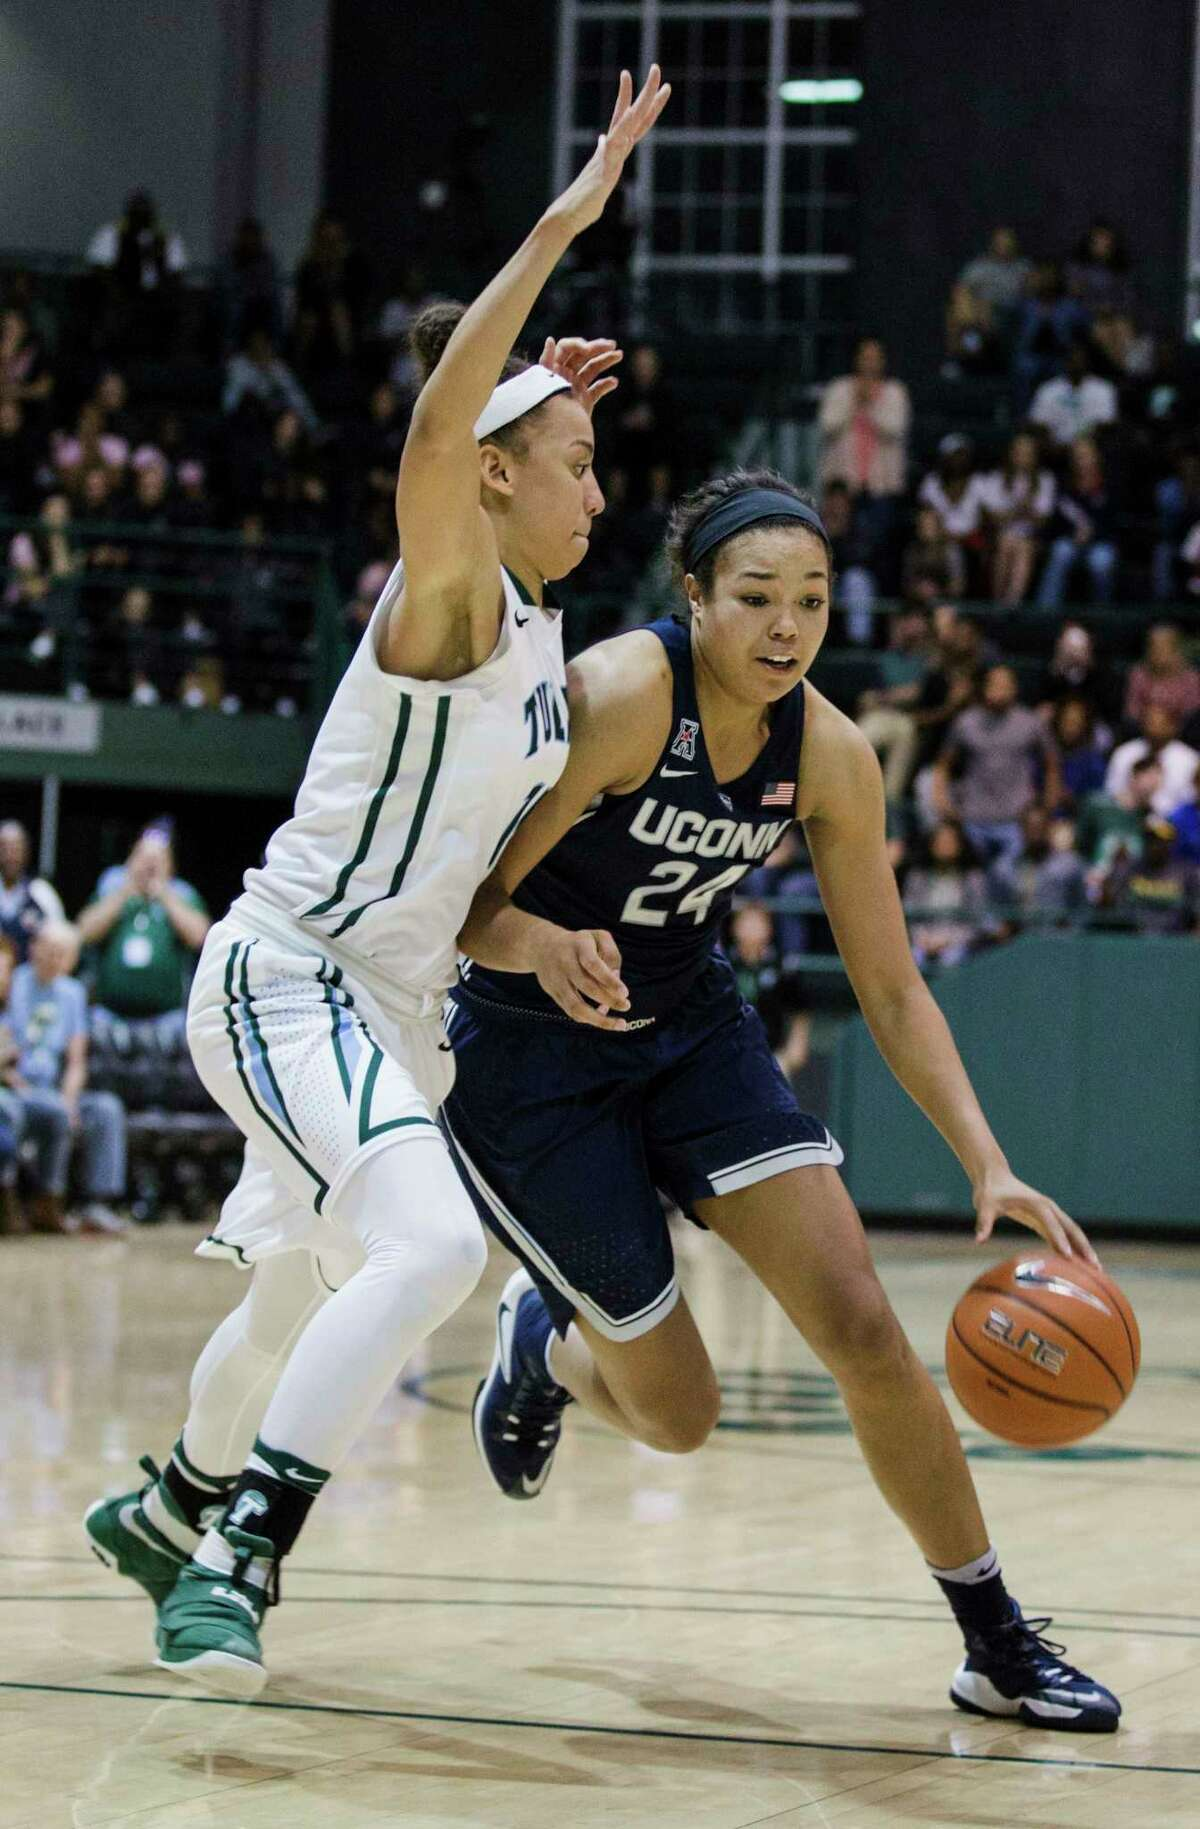 Tulane guard Tene Thompson, left, tries to block Connecticut guard/forward Napheesa Collier during the second half of an NCAA college basketball game in New Orleans, Saturday, Feb. 18, 2017. (AP Photo/Sophia Germer) ORG XMIT: LASG202